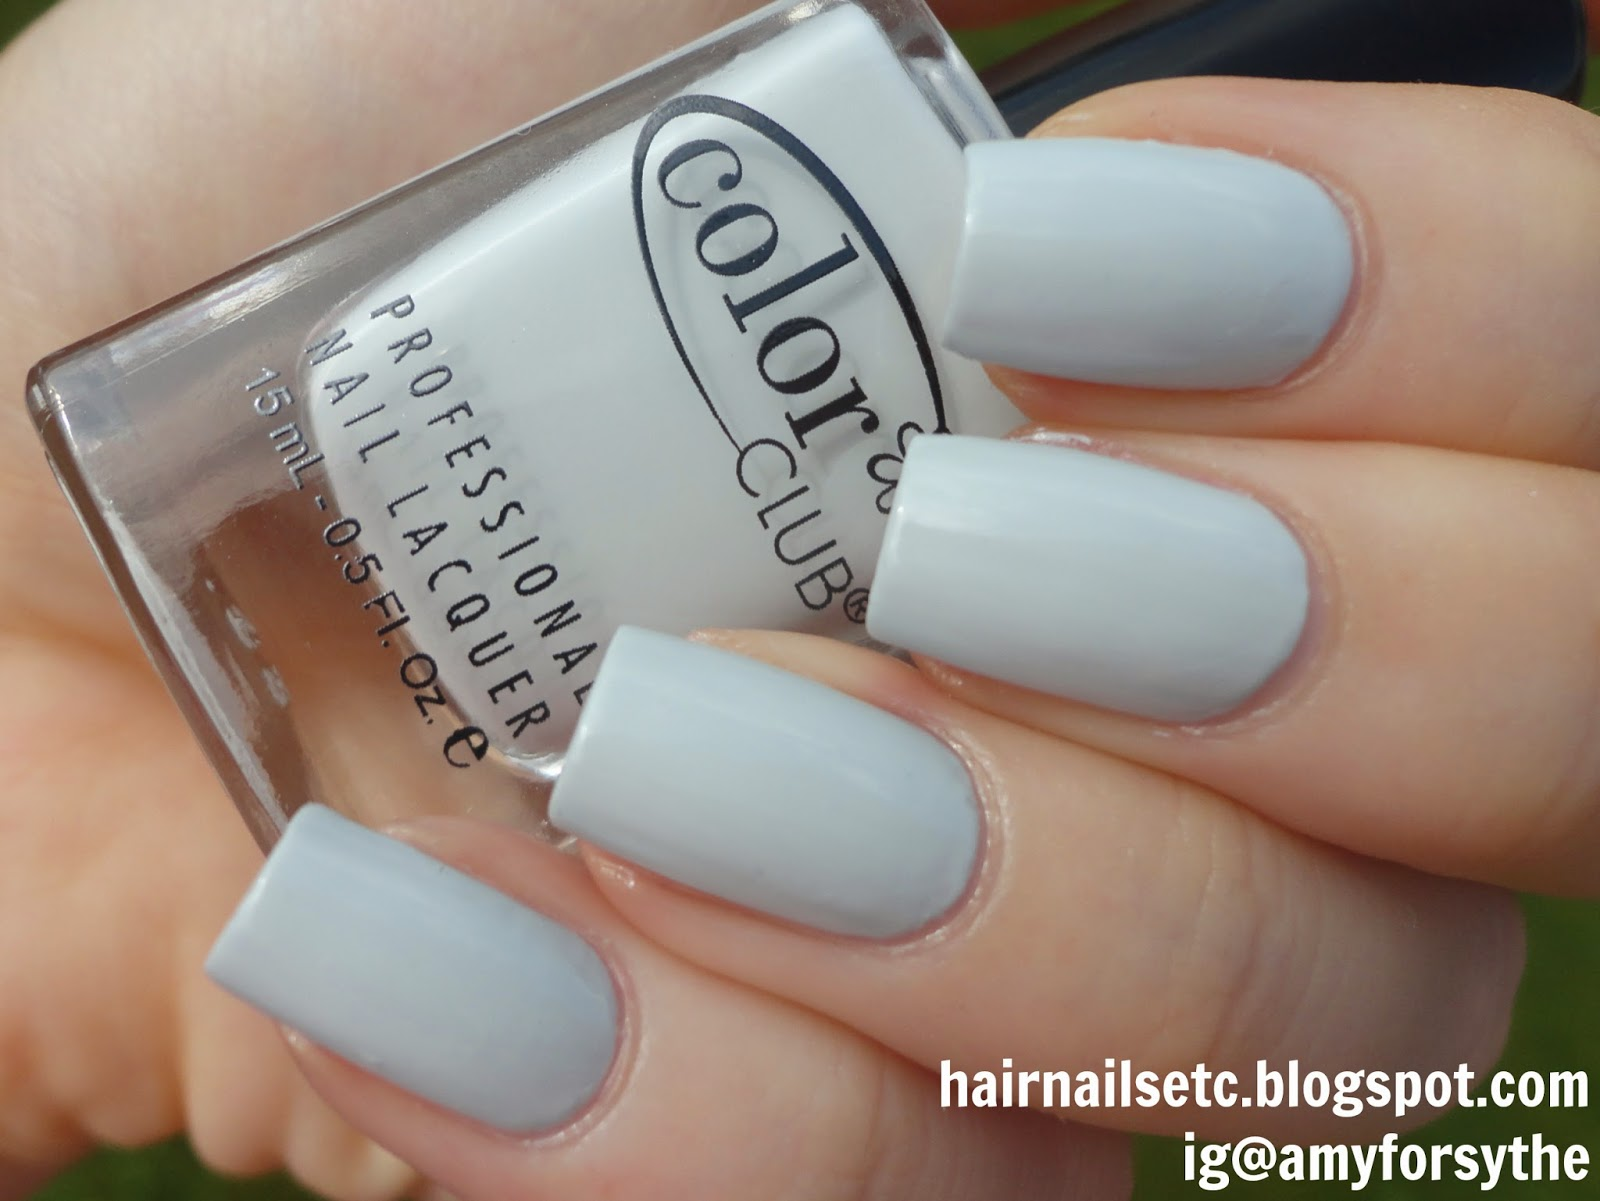 Swatch and Review of Color Club Nail Lacquer in Silver Lake from Girl About Town Collection, Fall 2013